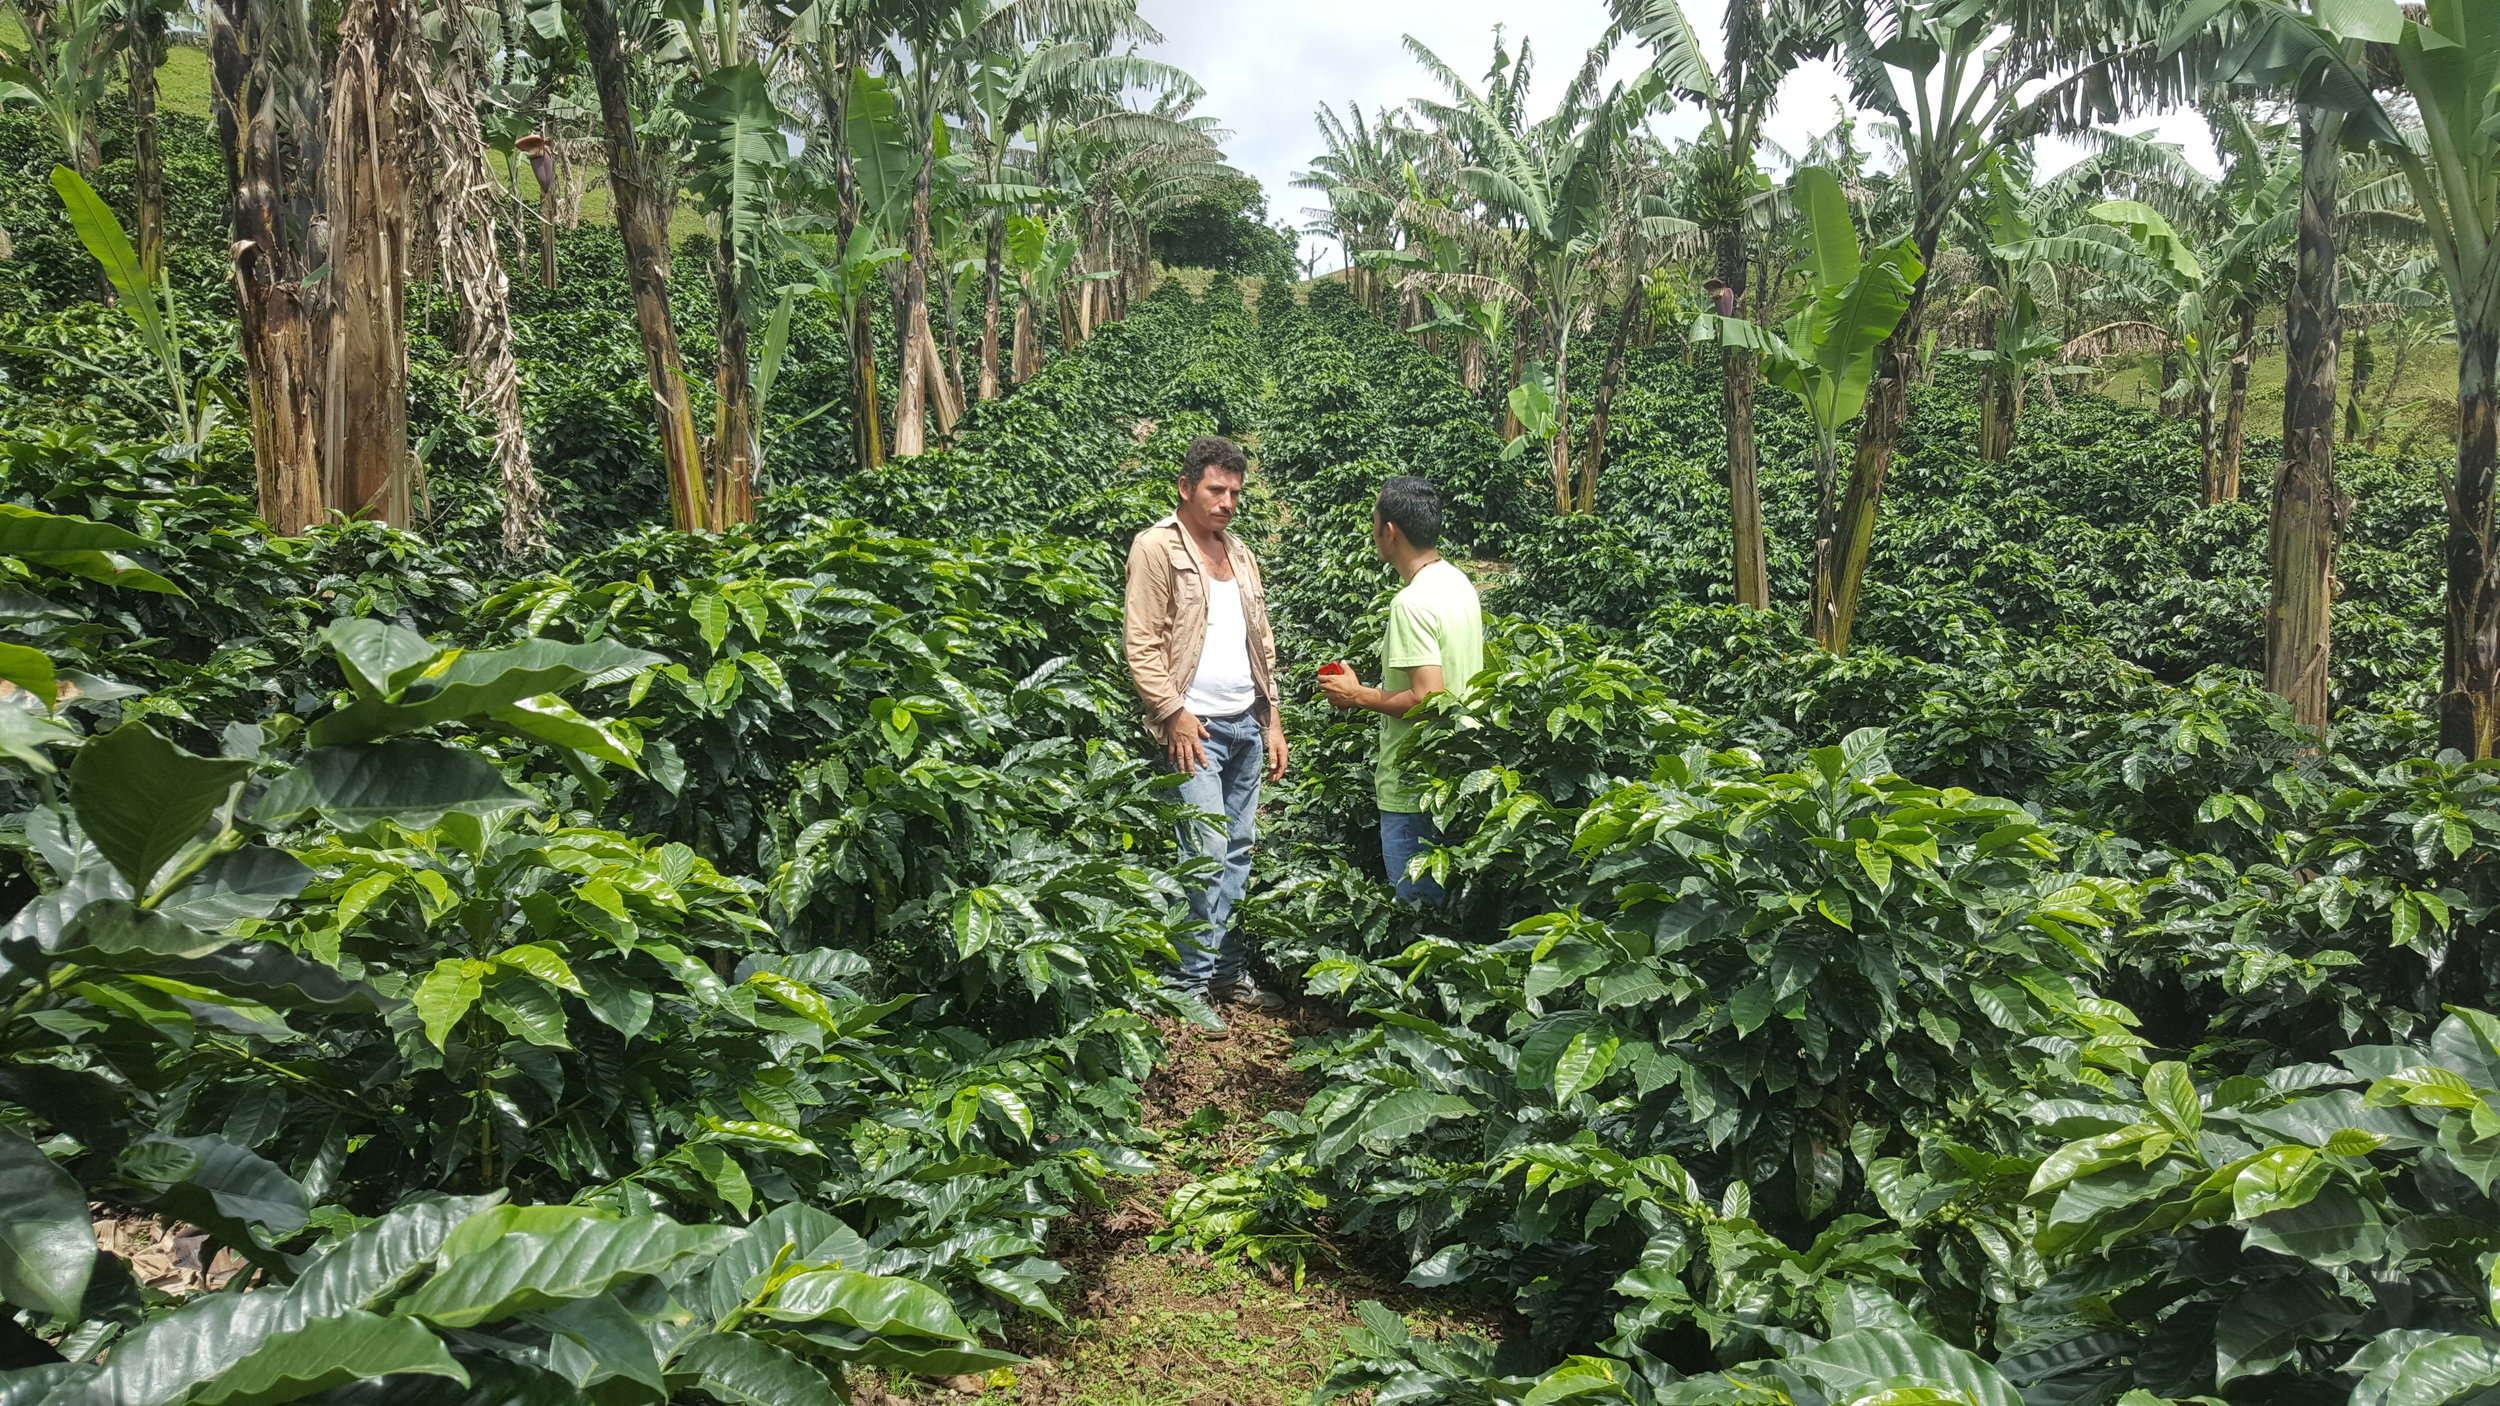 Farmers and farm workers of different areas and farms cooperate closely on these smaller plantations.